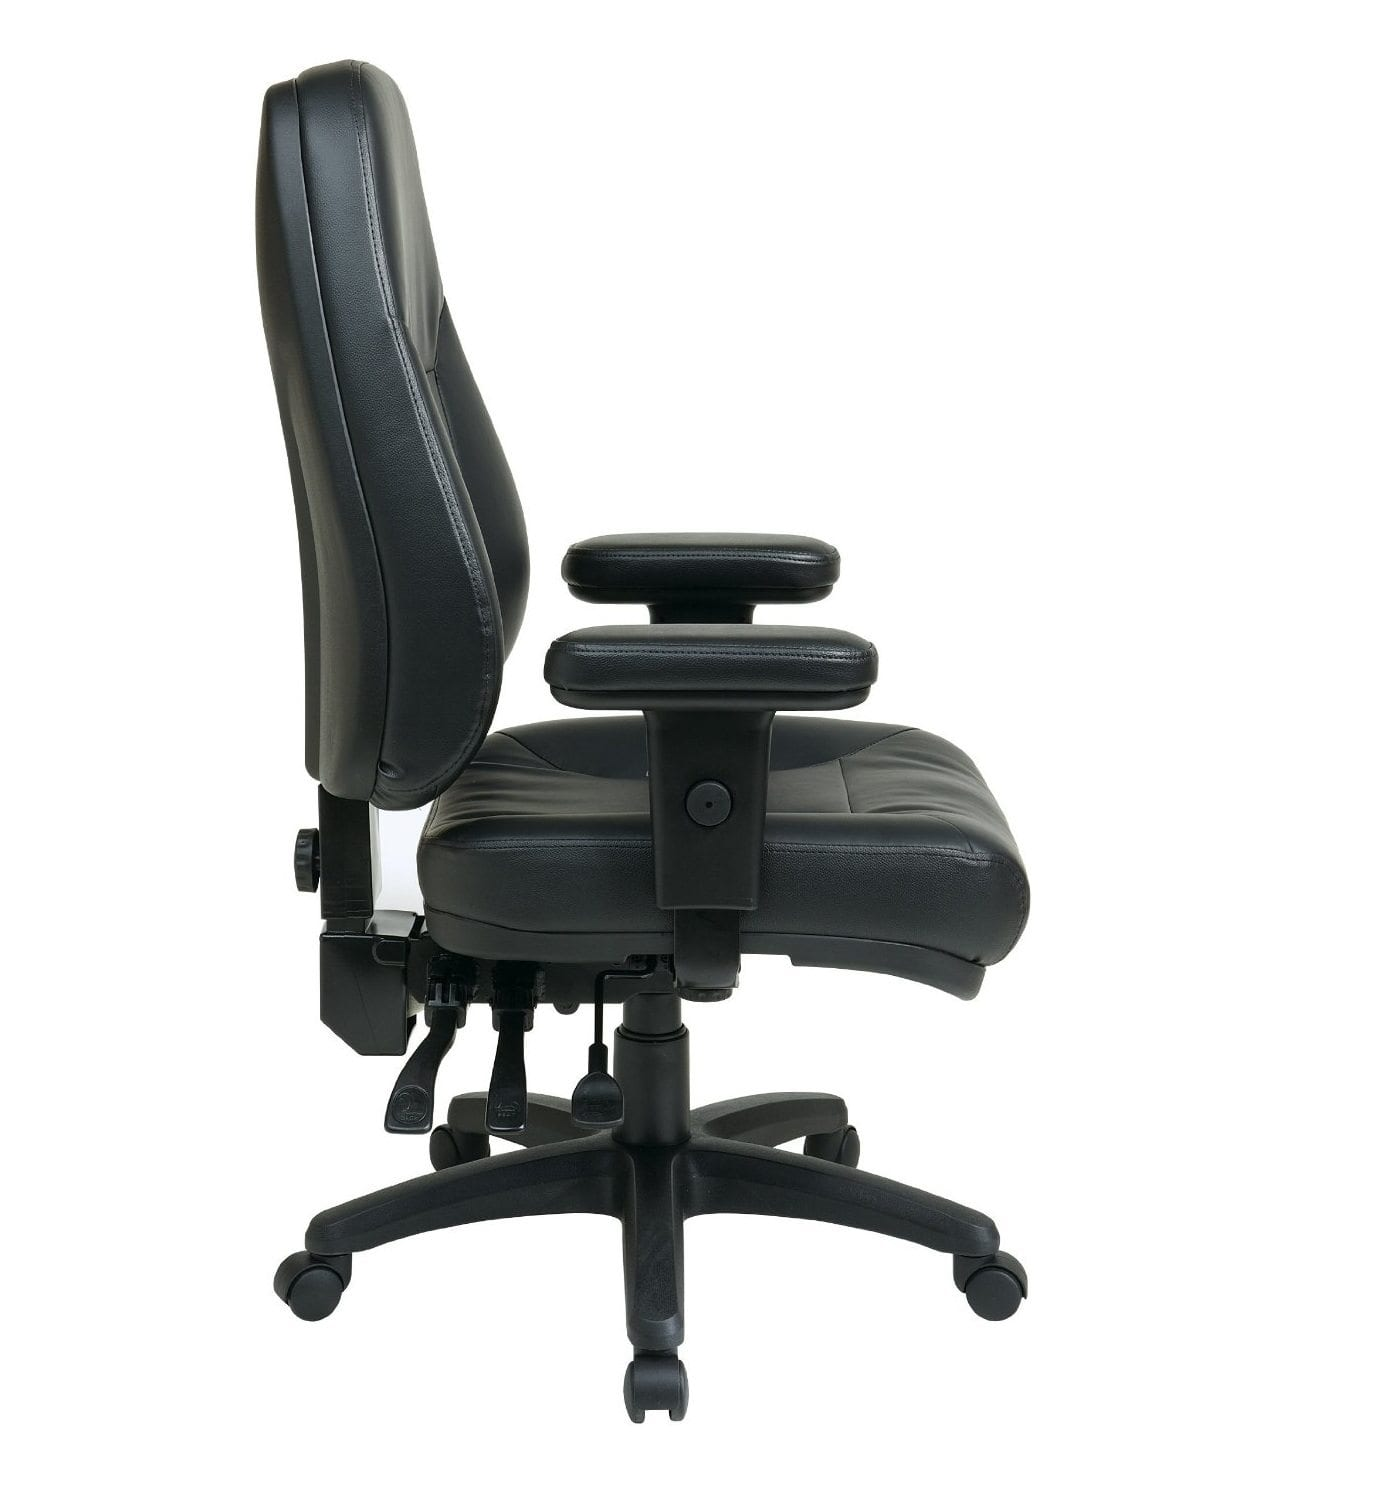 best chair for posture | el paso back clinic® • 915-850-0900